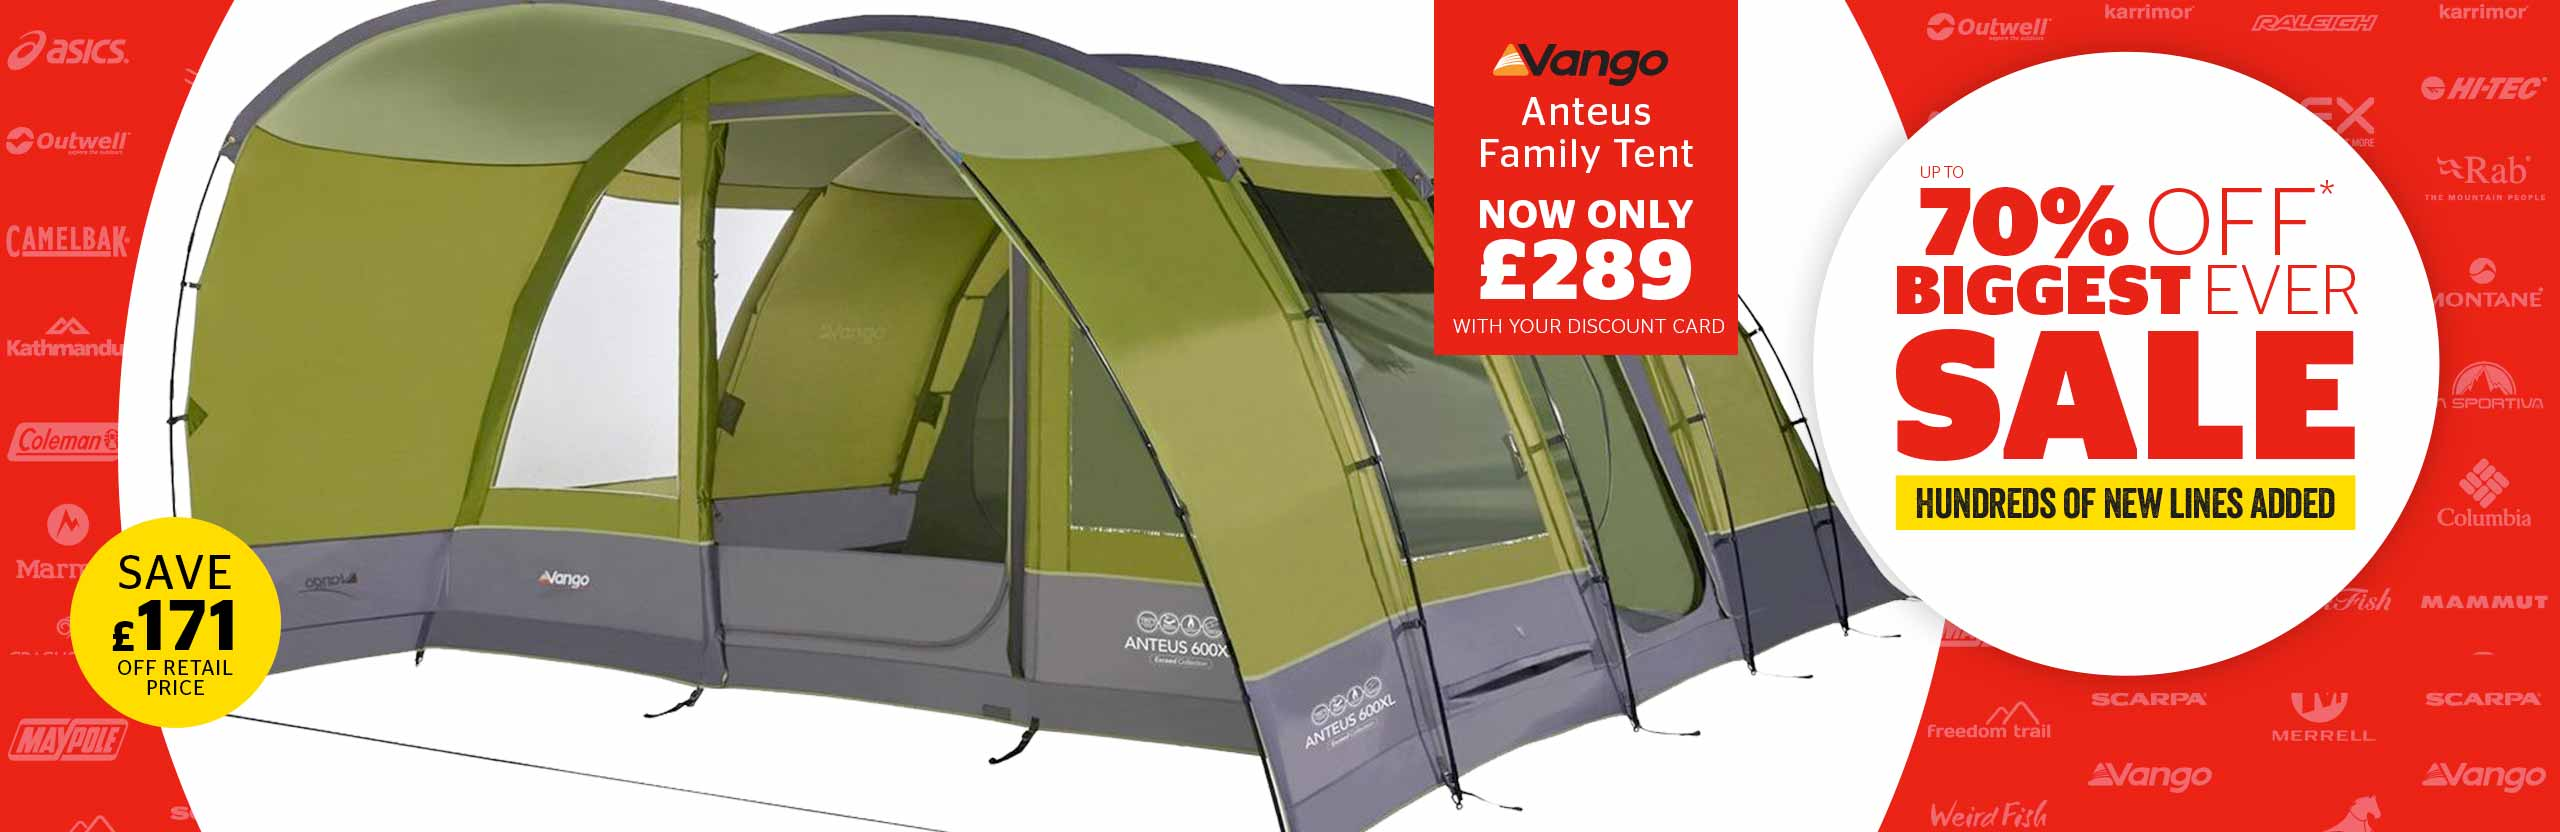 GO Outdoors: Tents & Camping | Outdoor Clothing | Walking Boots